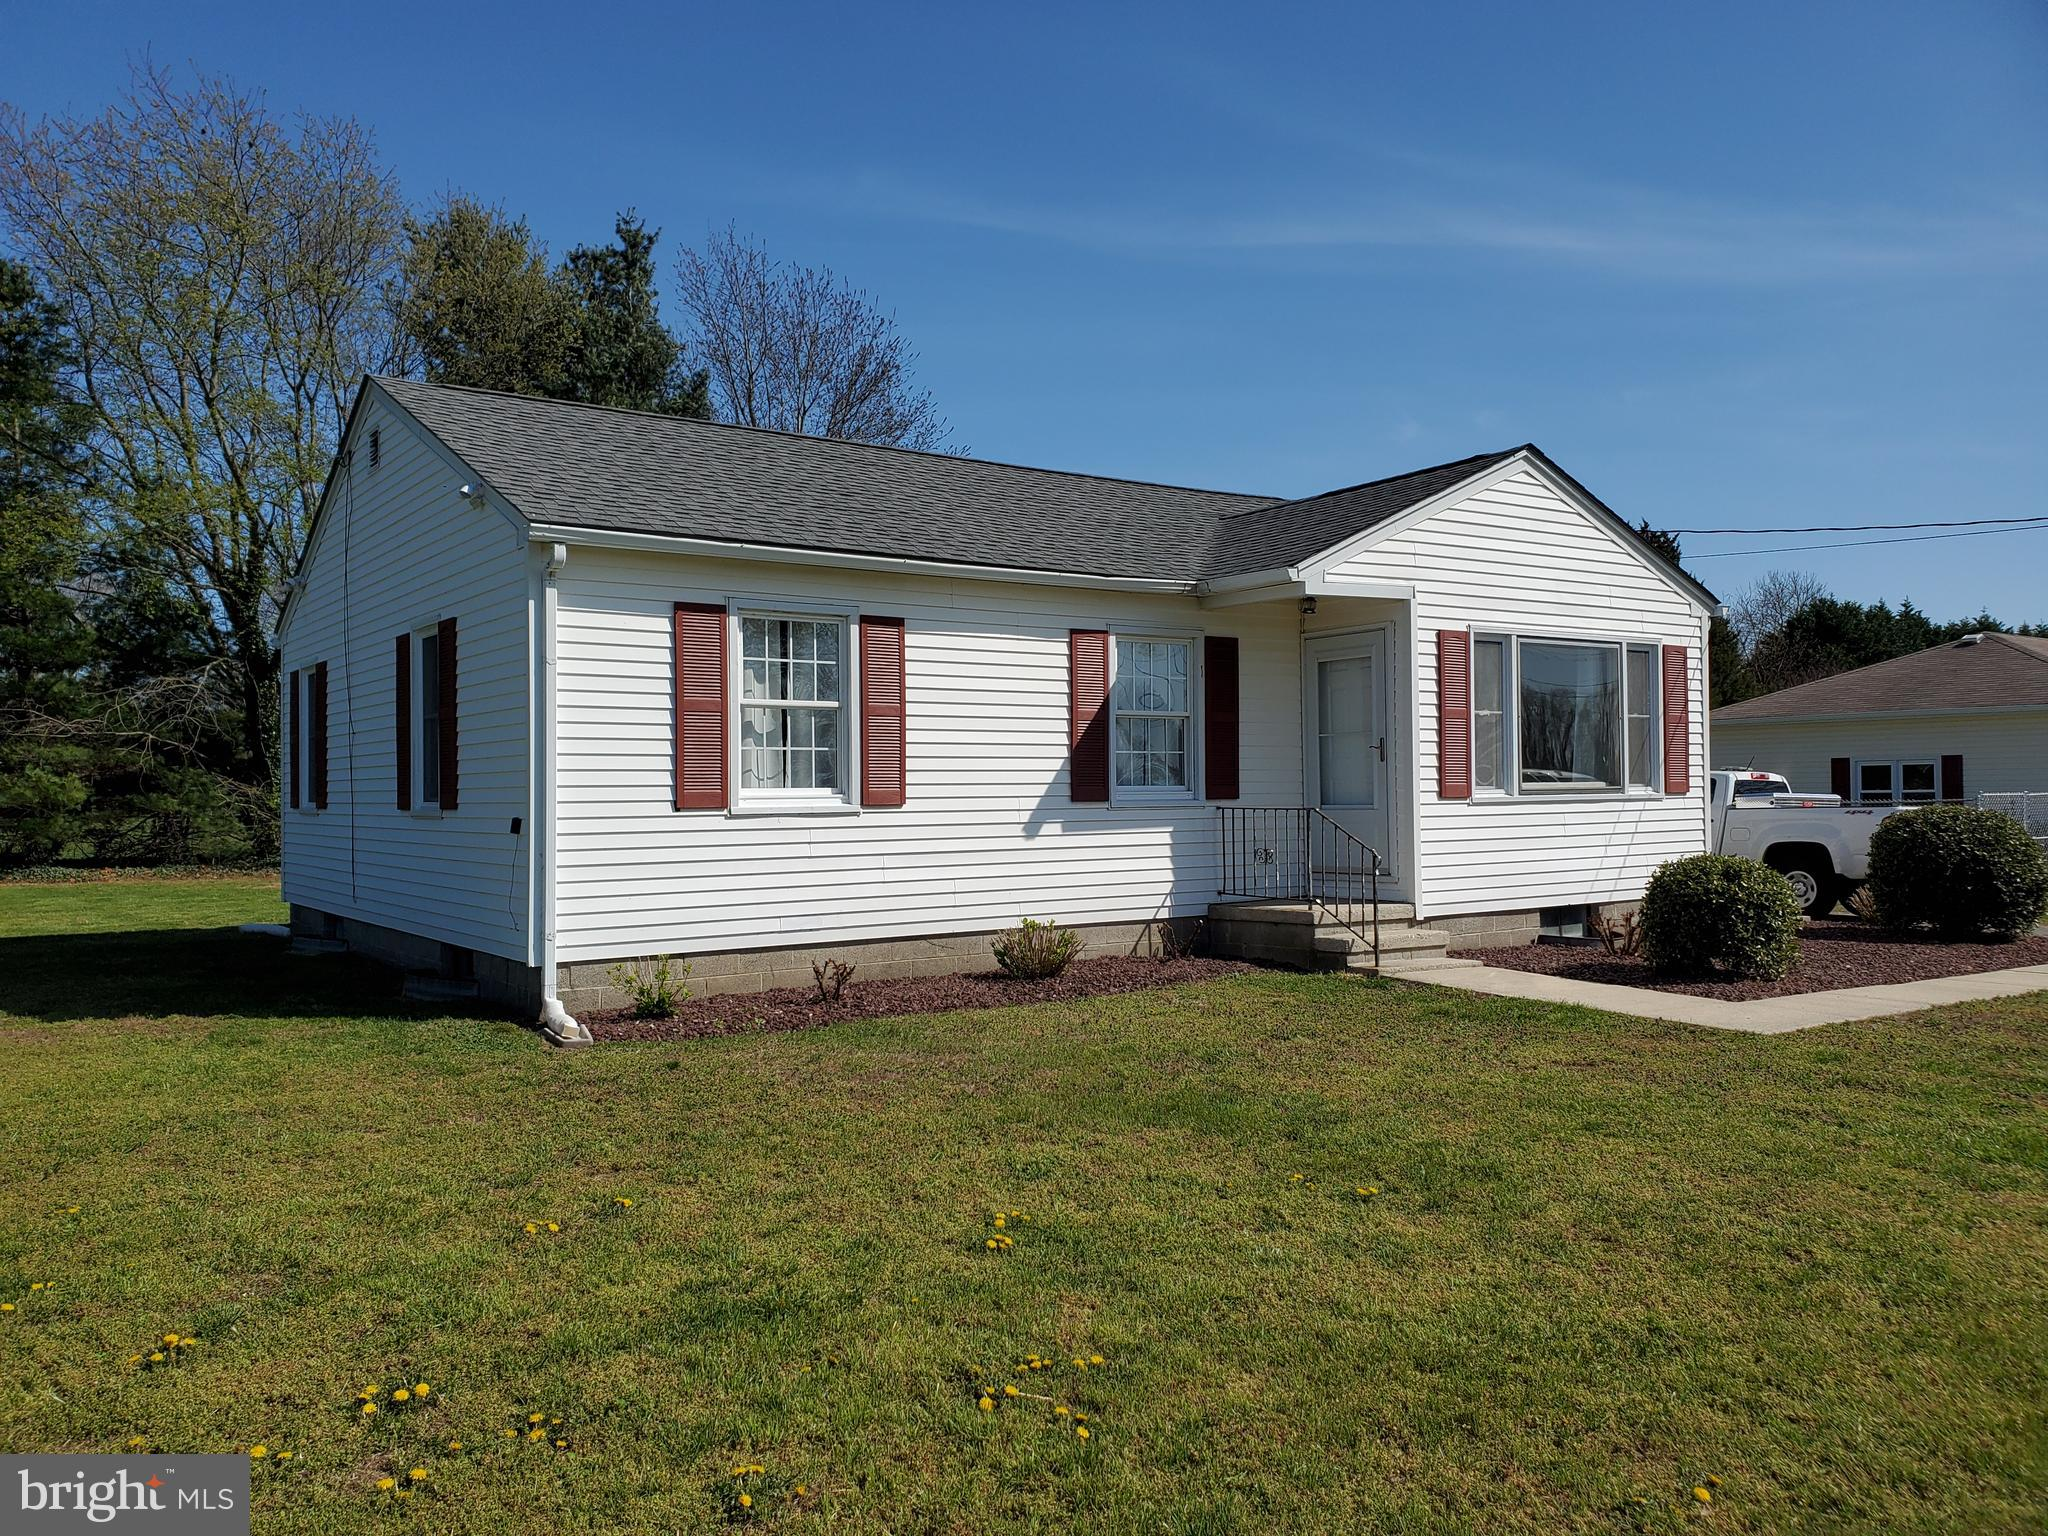 This move in ready 3 bedroom 1 bath home with full basement is ready for a new owner.  The rooms have all been freshly painted and new wide plank laminate flooring has been installed in the living room and kitchen areas.  New carpet has been installed in the bedrooms.  The full basement is unfinished but, offers extra spaces and all the mechanical items are in the basement, so the living area is just for living.  The tree lined yard offers lots of privacy, yet you have all the conveniences of being close to town and Rt 1.  The road this home is on is not a through road, so lots of places to walk and enjoy your new home.